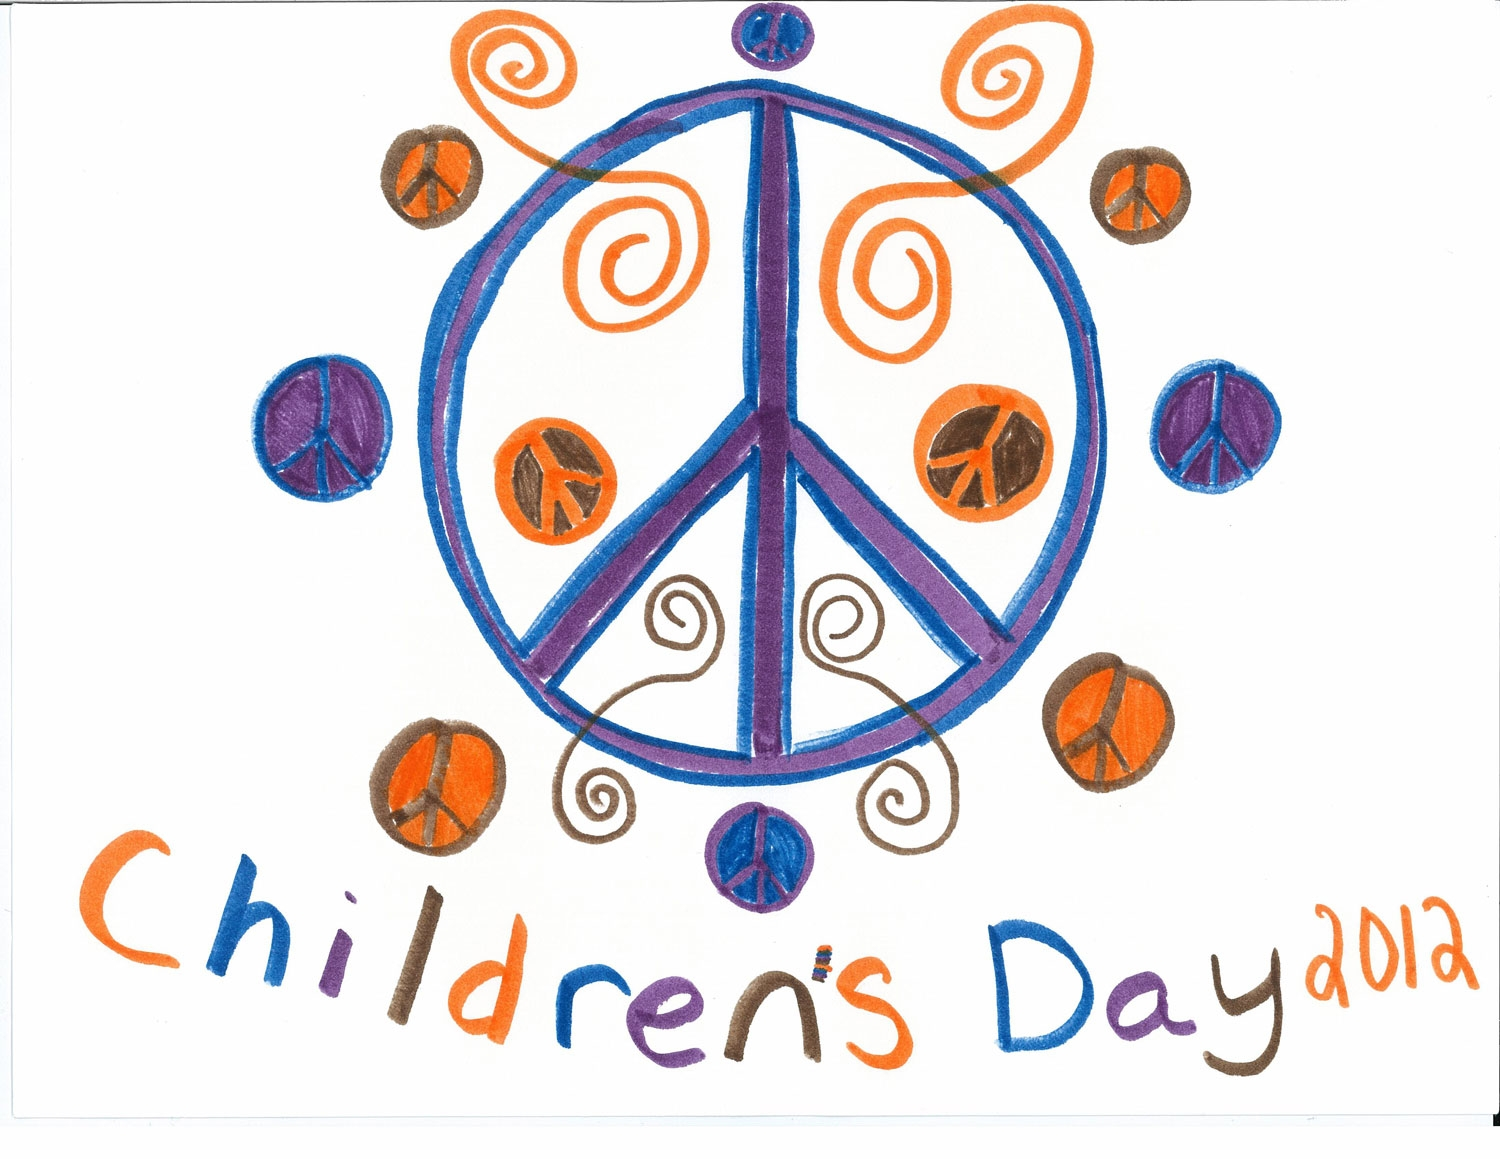 childrensday_web